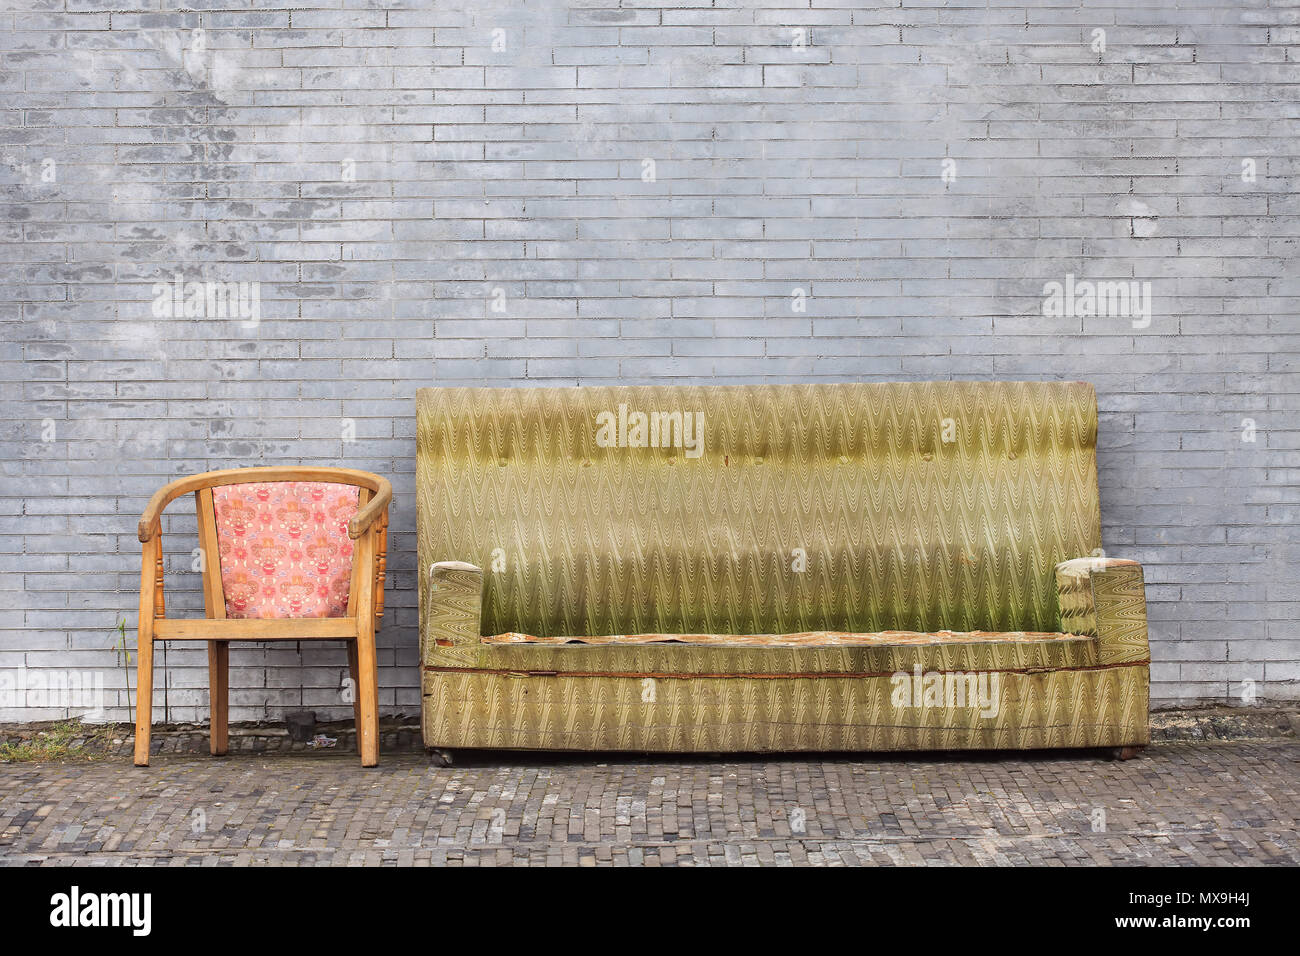 Old worn-out furniture against ta great brick wall, Beijing, China Stock Photo